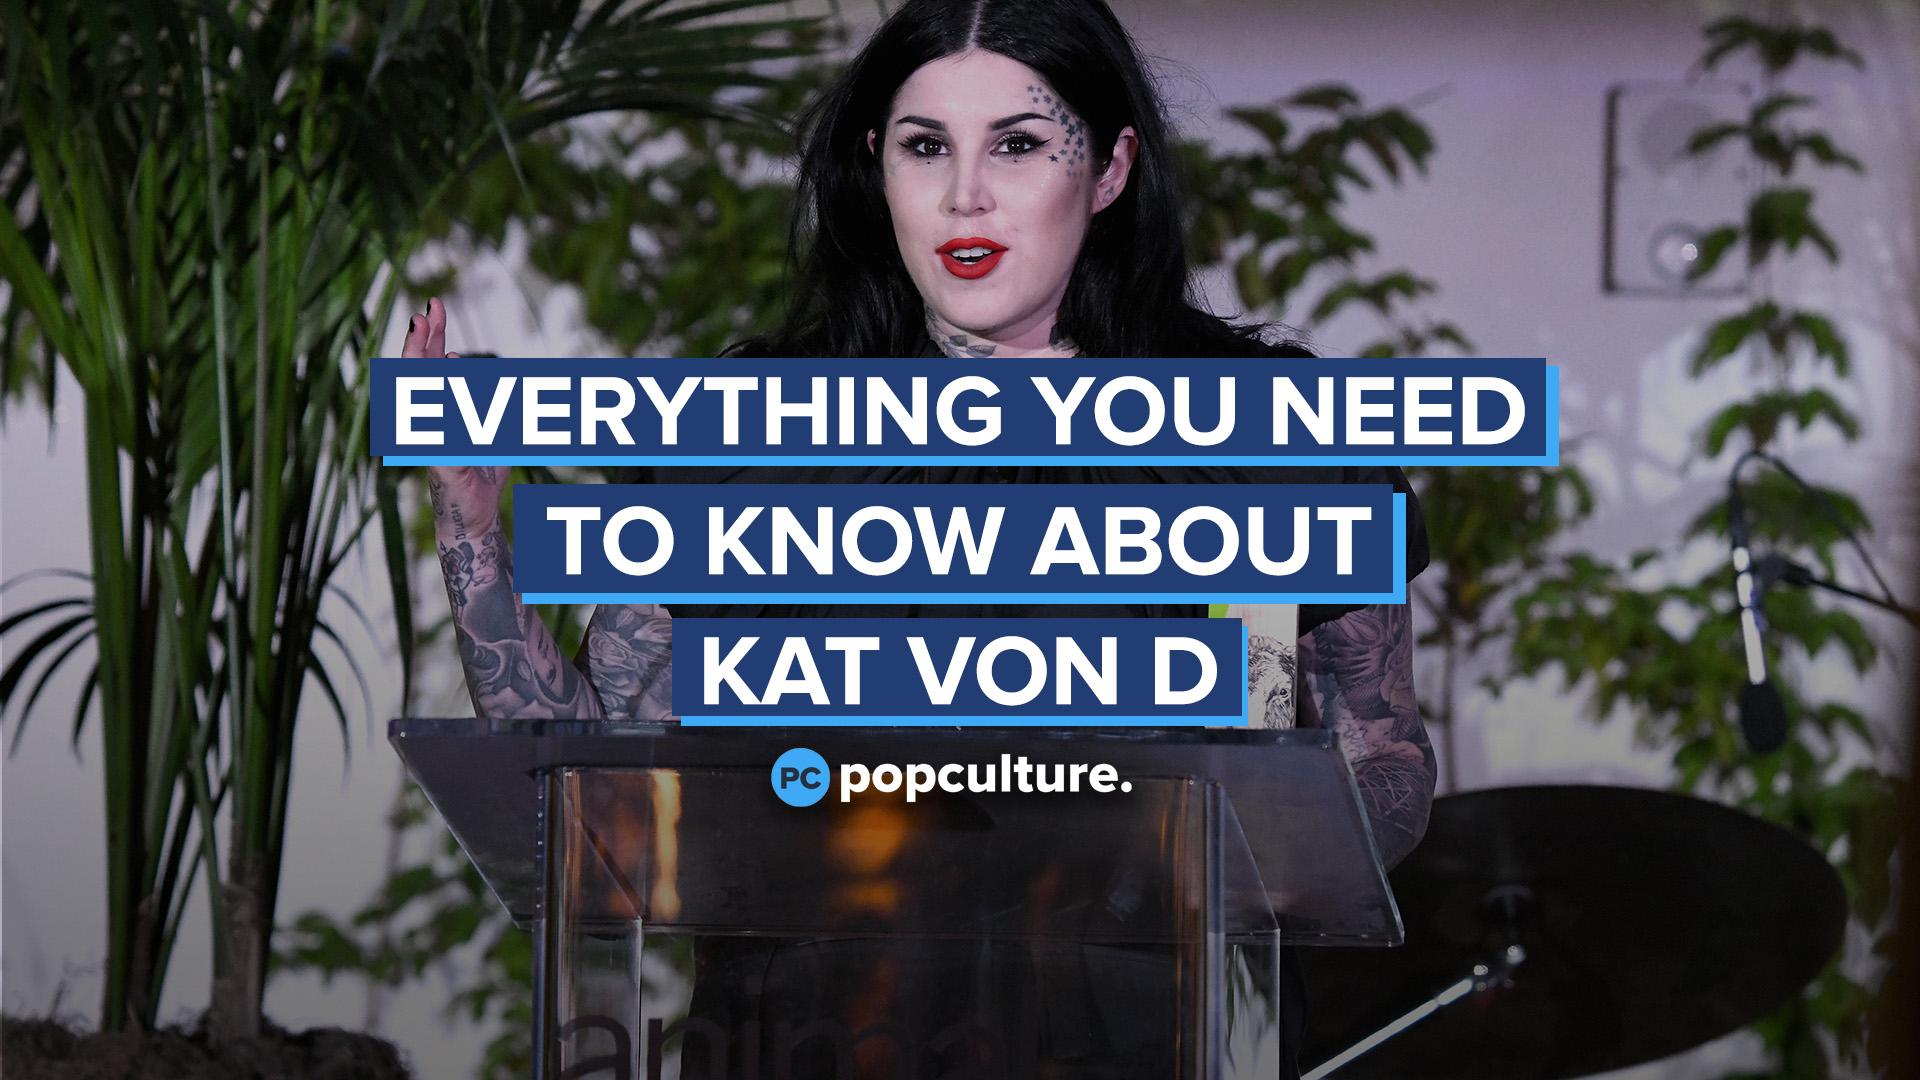 Everything You Need to Know About Kat Von D screen capture